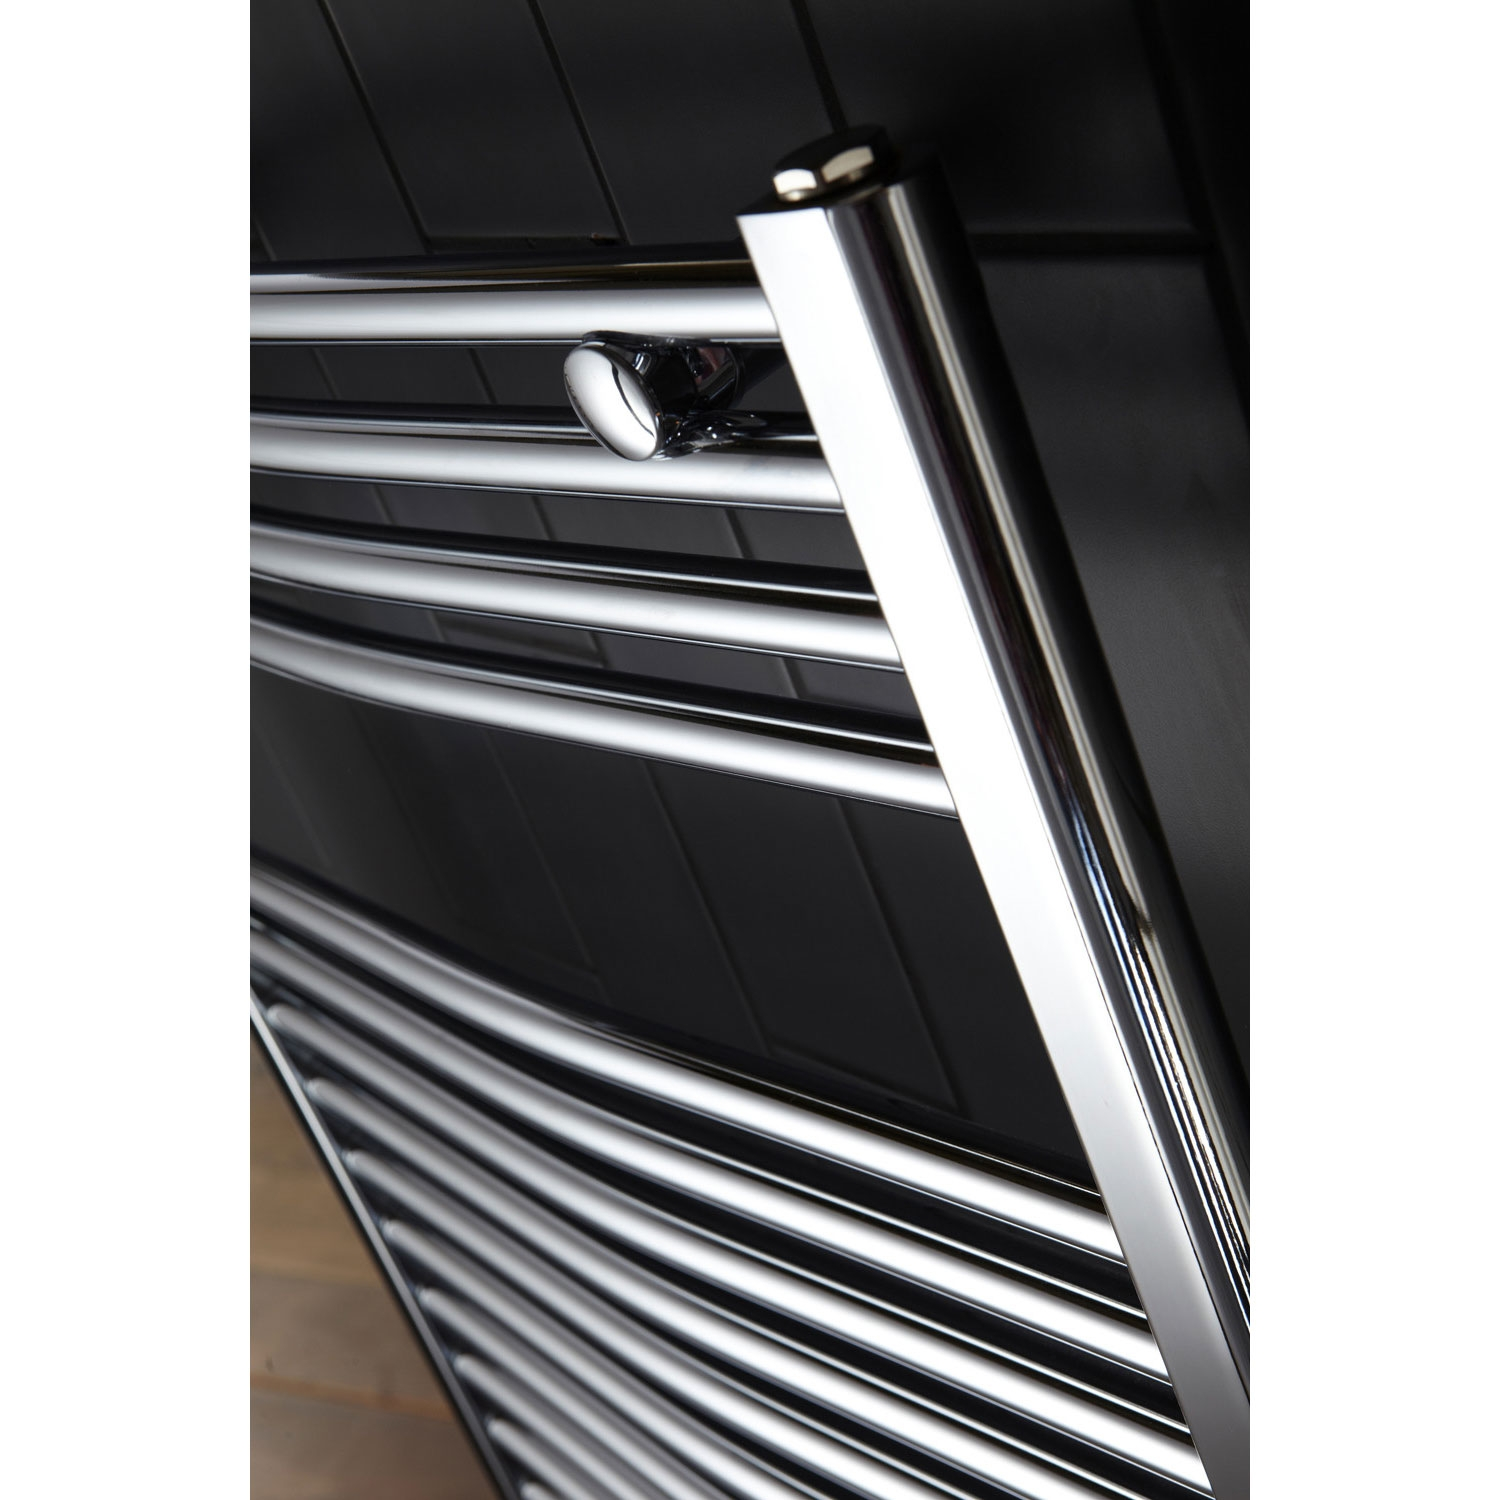 Verona Curved Designer Heated Towel Rail 700mm H x 600mm W Chrome